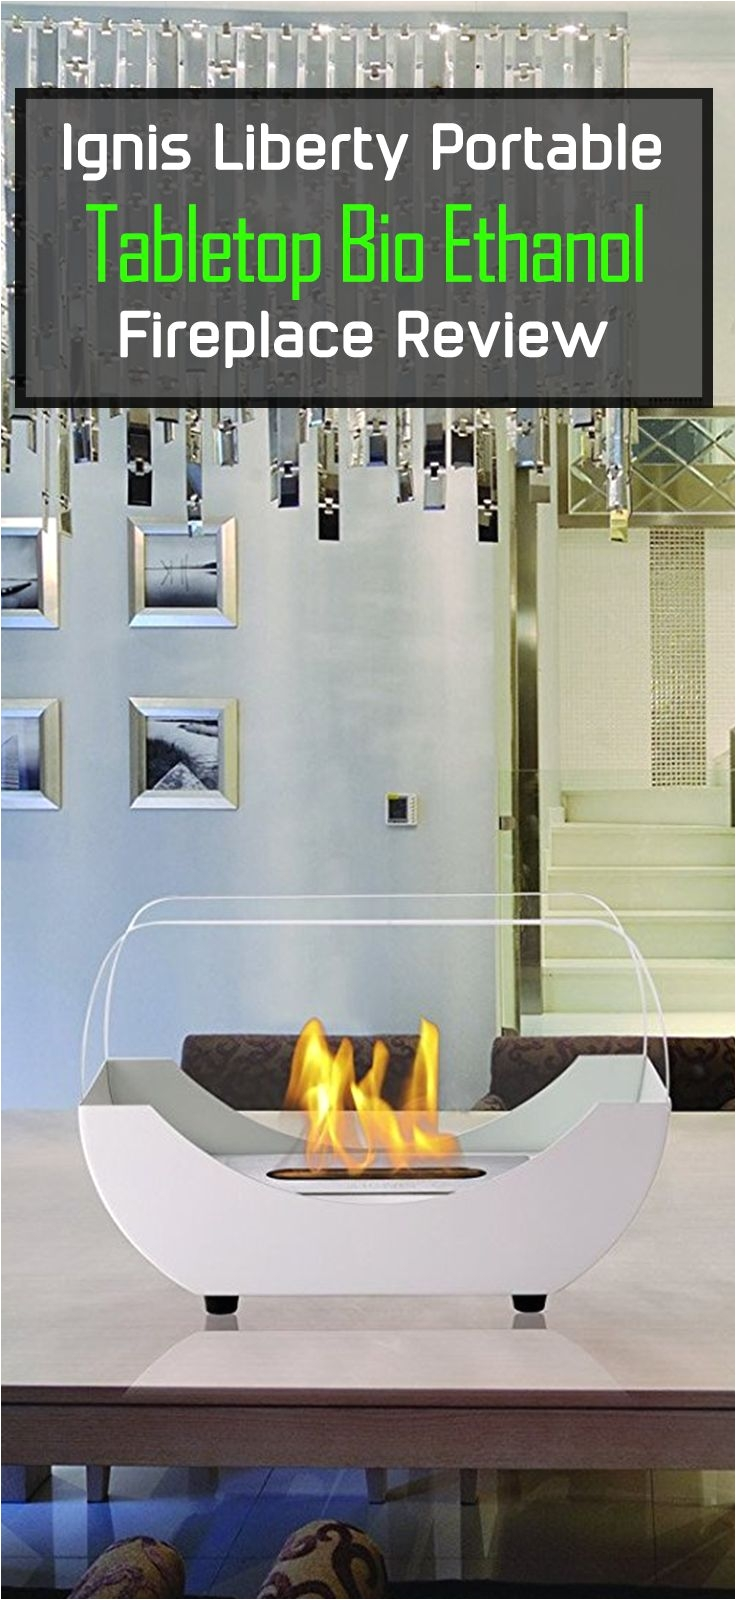 how does a water vapor fireplace work the 13 best portable fireplace images on pinterest fire places of how does a water vapor fireplace work